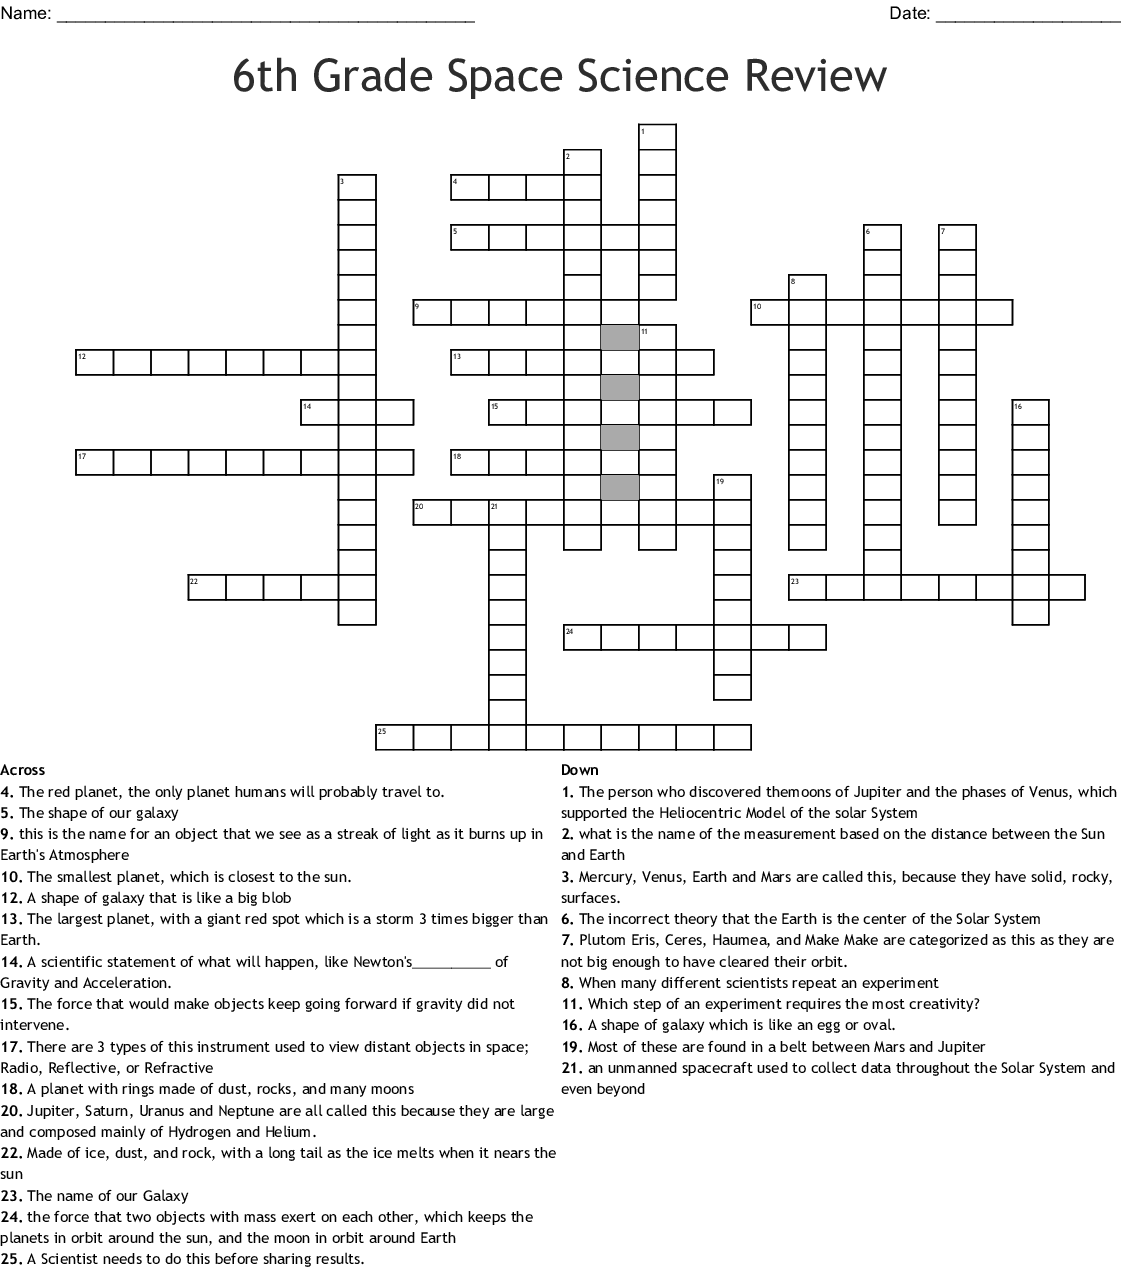 6th Grade Space Science Review Crossword